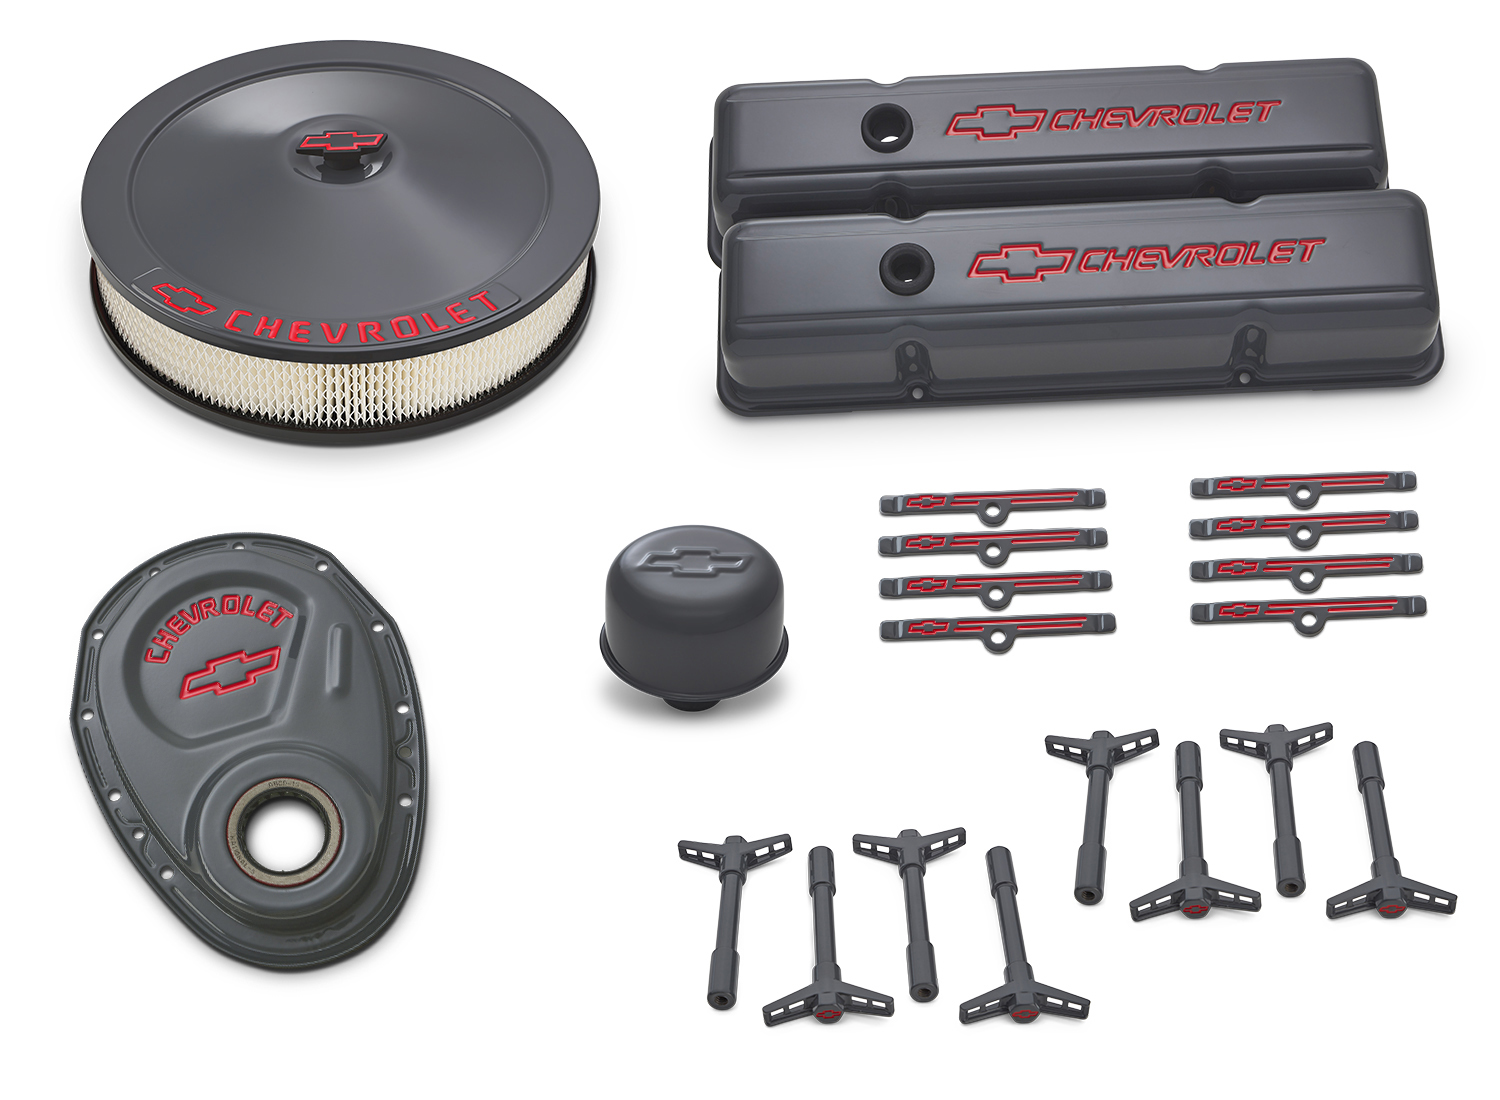 Proform 141-880 Engine Dress Up Kit, Air Cleaner / Tall Valve Covers / Breather / Hardware, Chevy Logo, Steel, Gray, Small Block Chevy, Kit